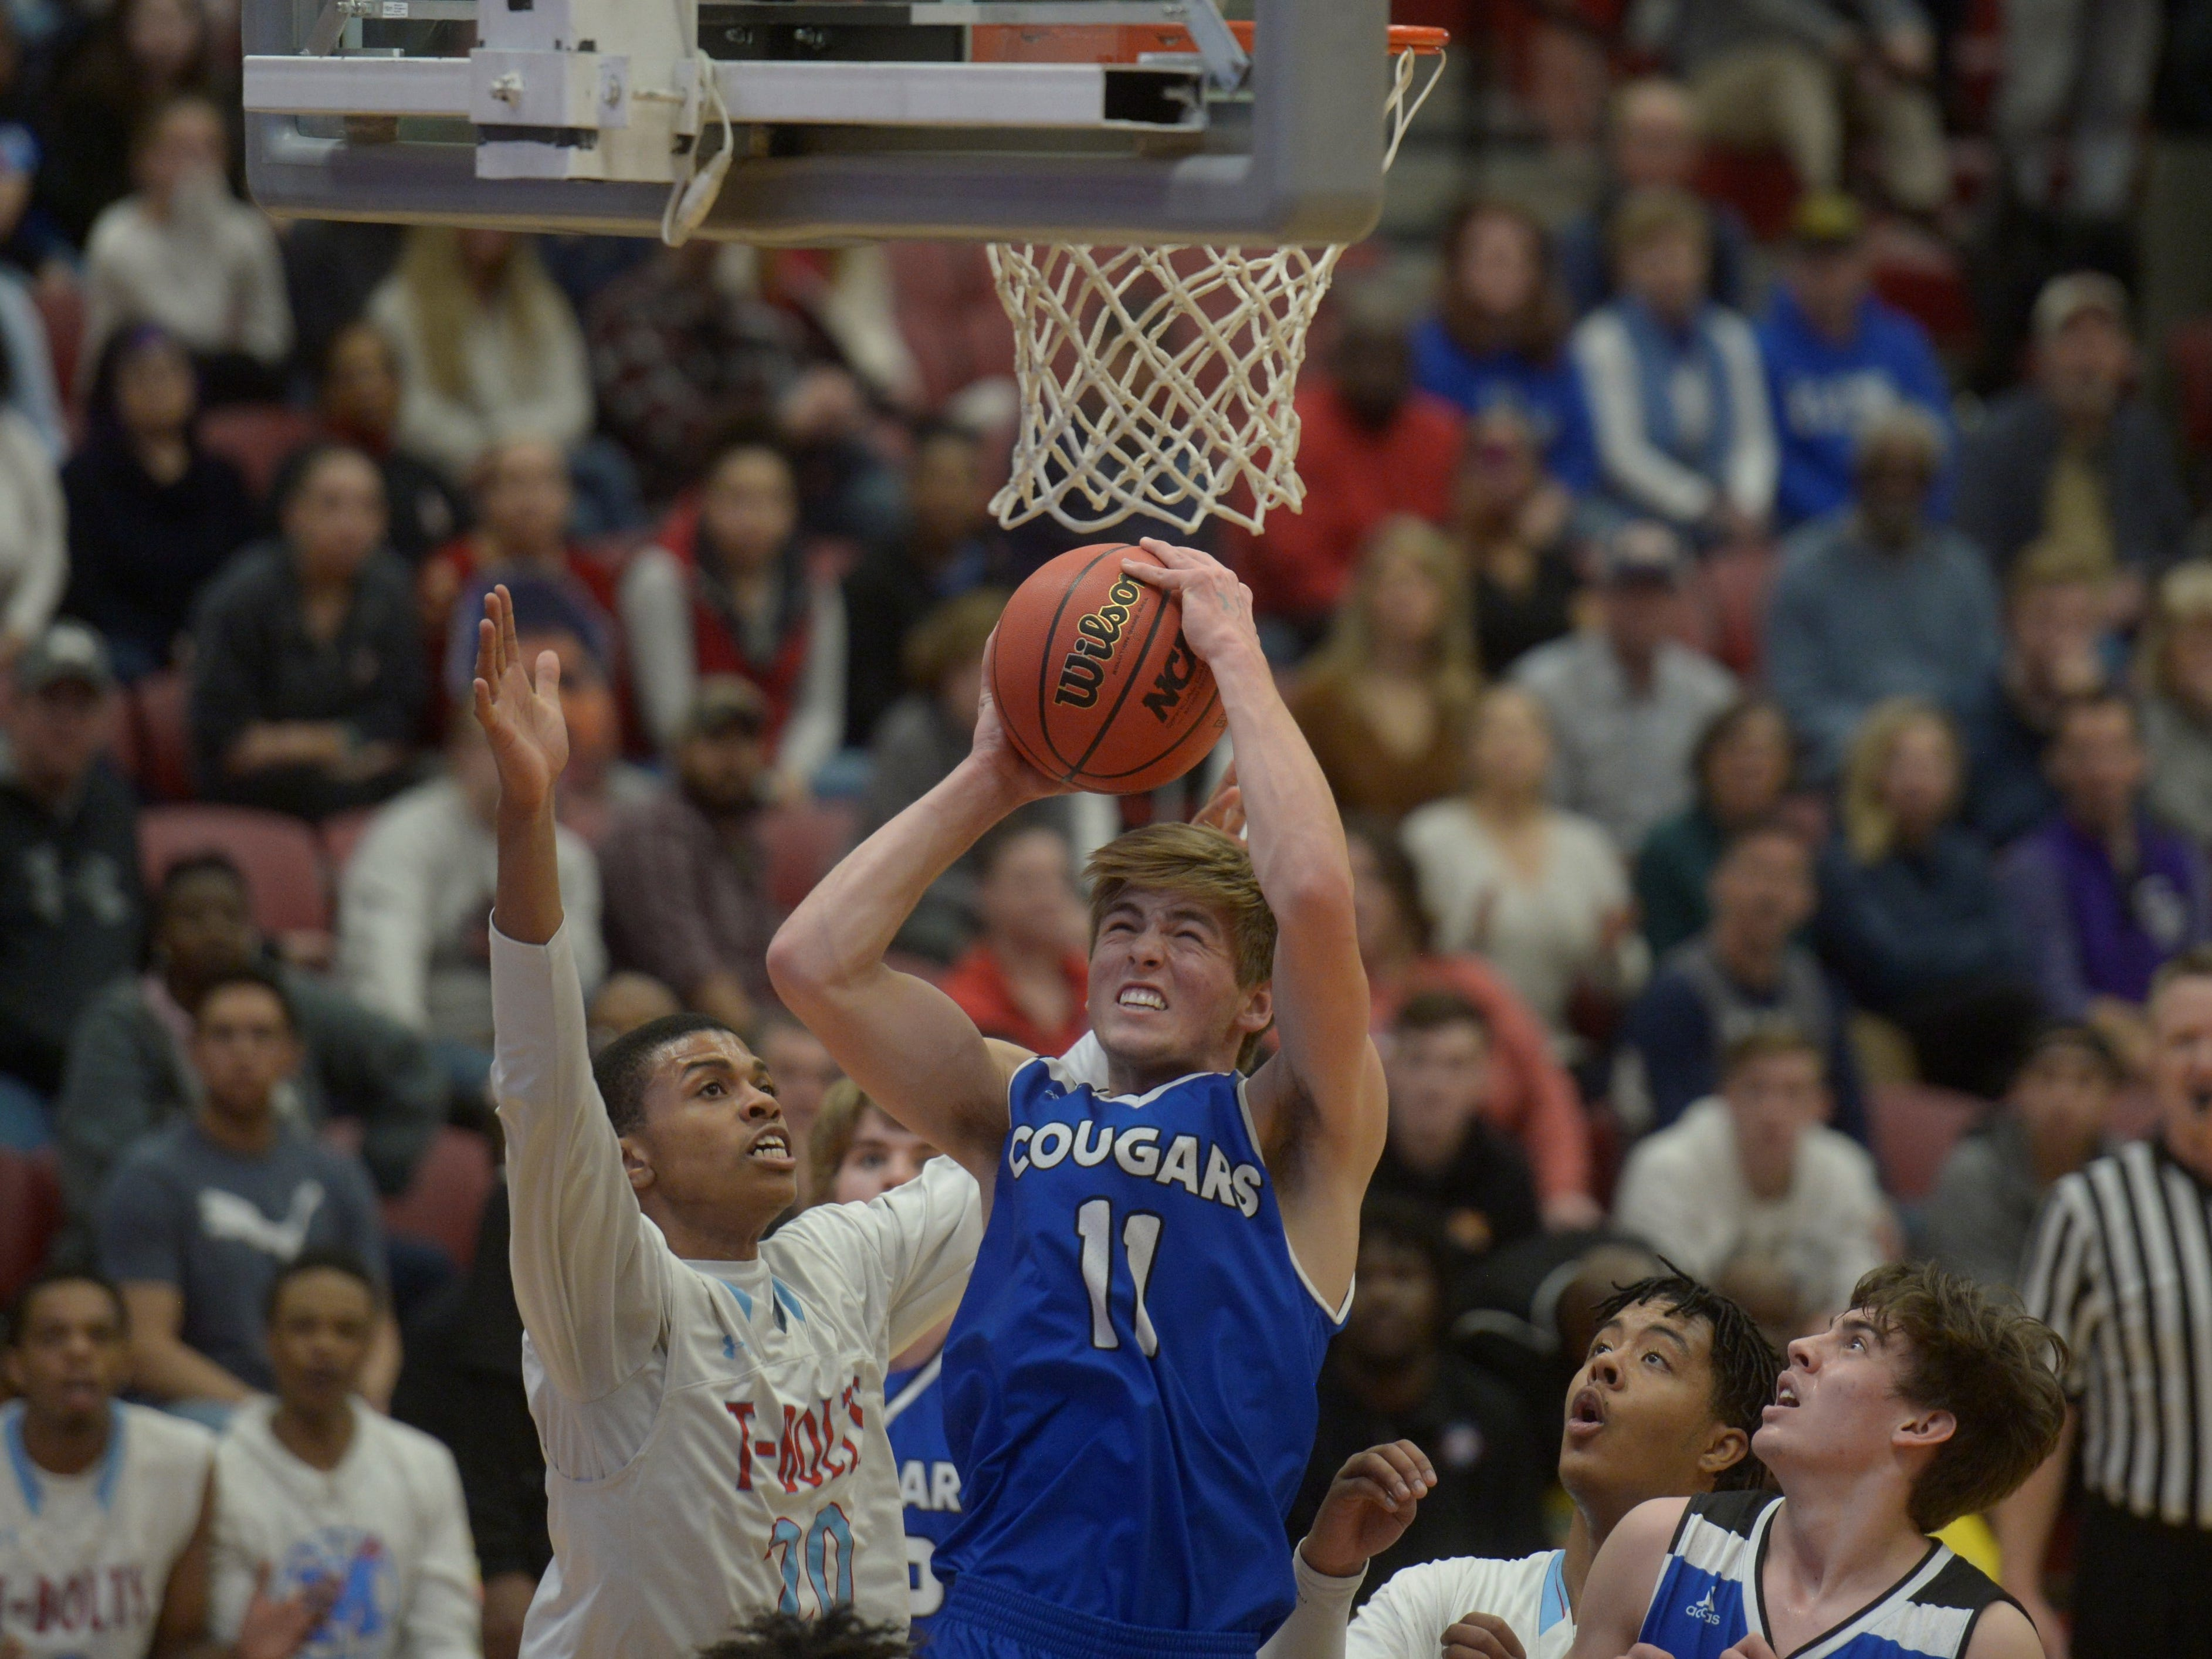 Resurrection Christian forward Reade Lindgren grabs a rebound during a Class 3A quarterfinals game against Manual at the University of Denver on Thursday, March 7, 2019.